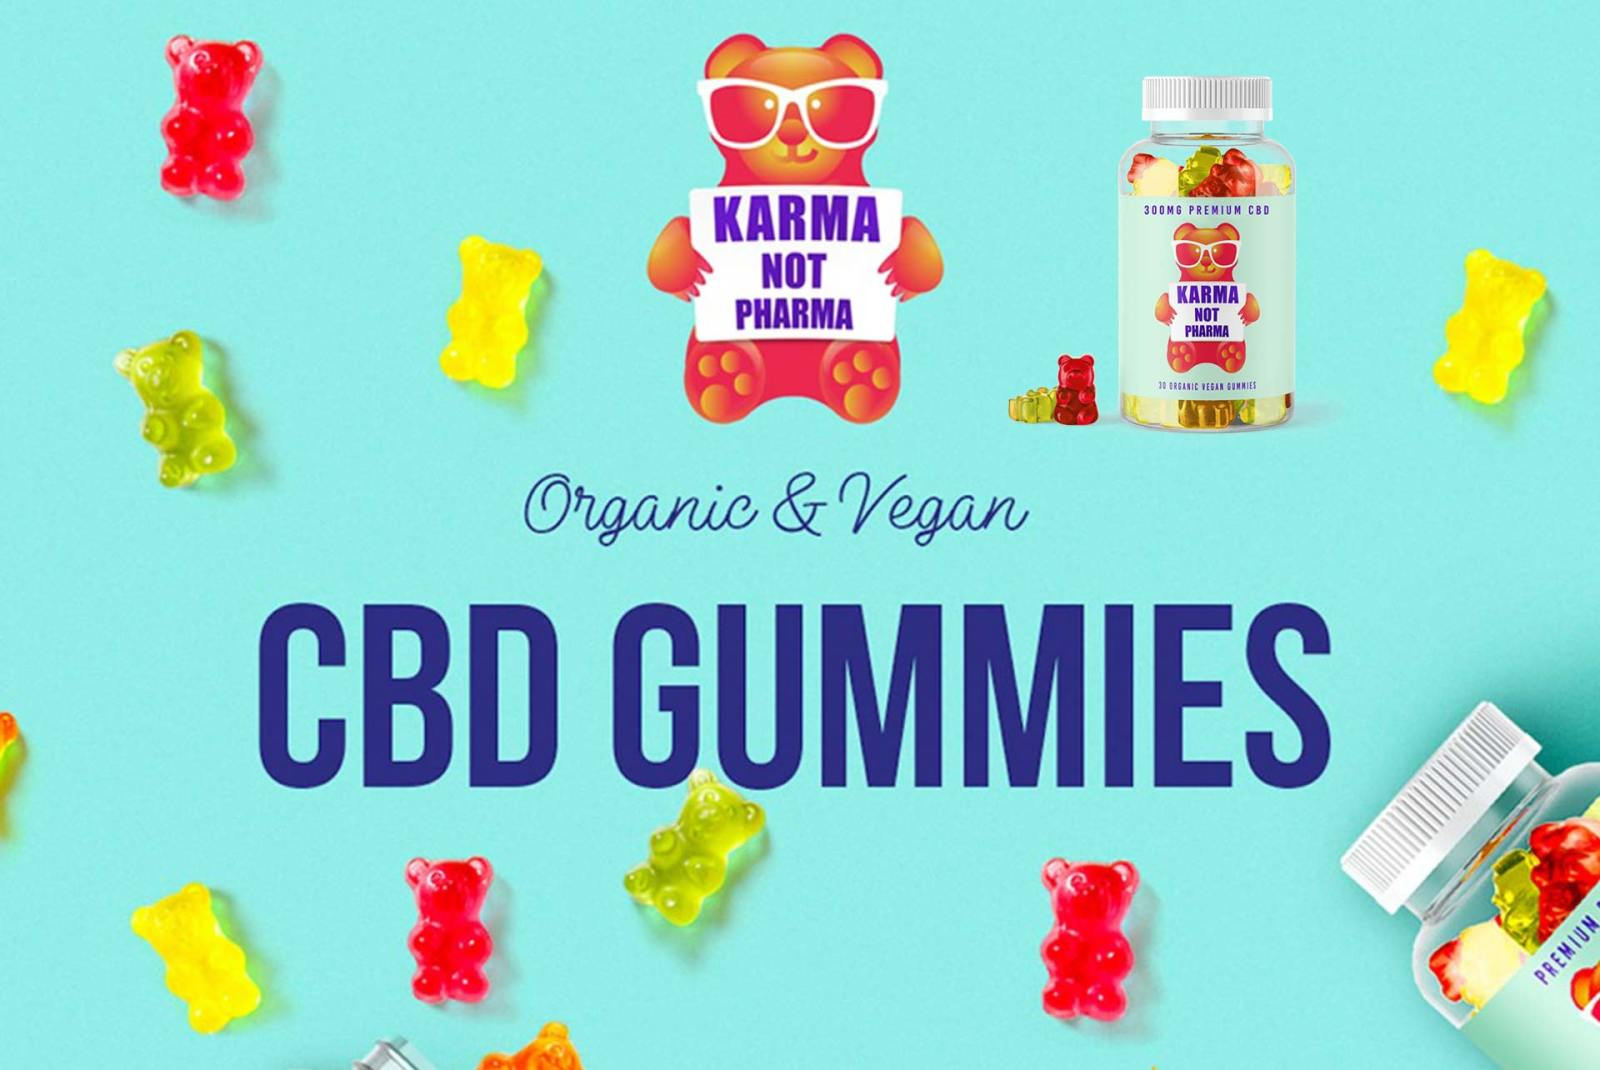 Is Karma Not Pharma CBD Cruelty-Free & Vegan?